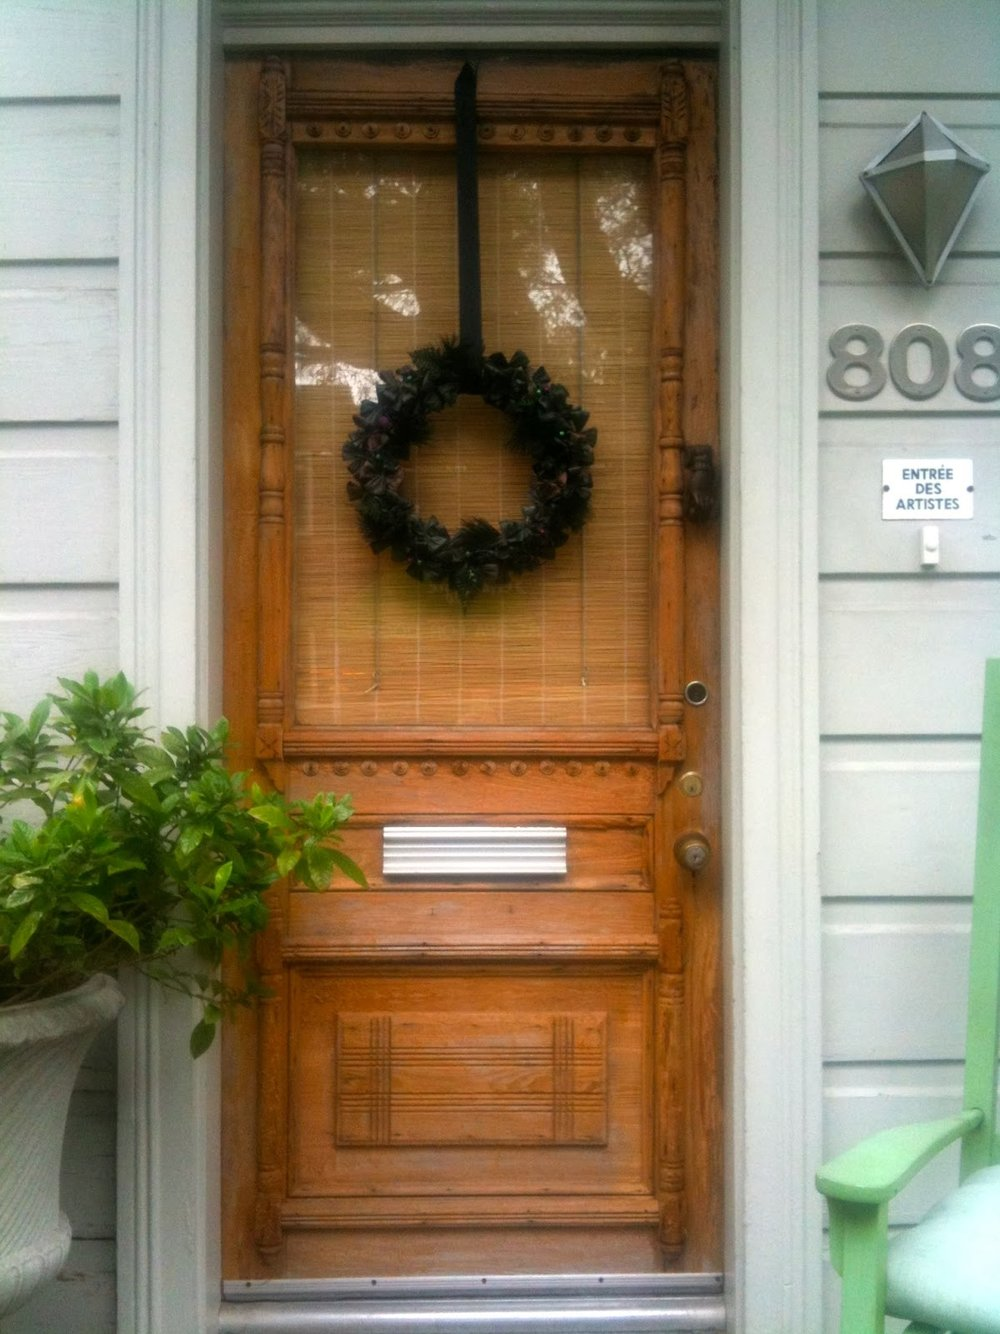 Interior designer Valorie Hart placed a Victorian mourning wreath on her front door after her beloved husband's death.